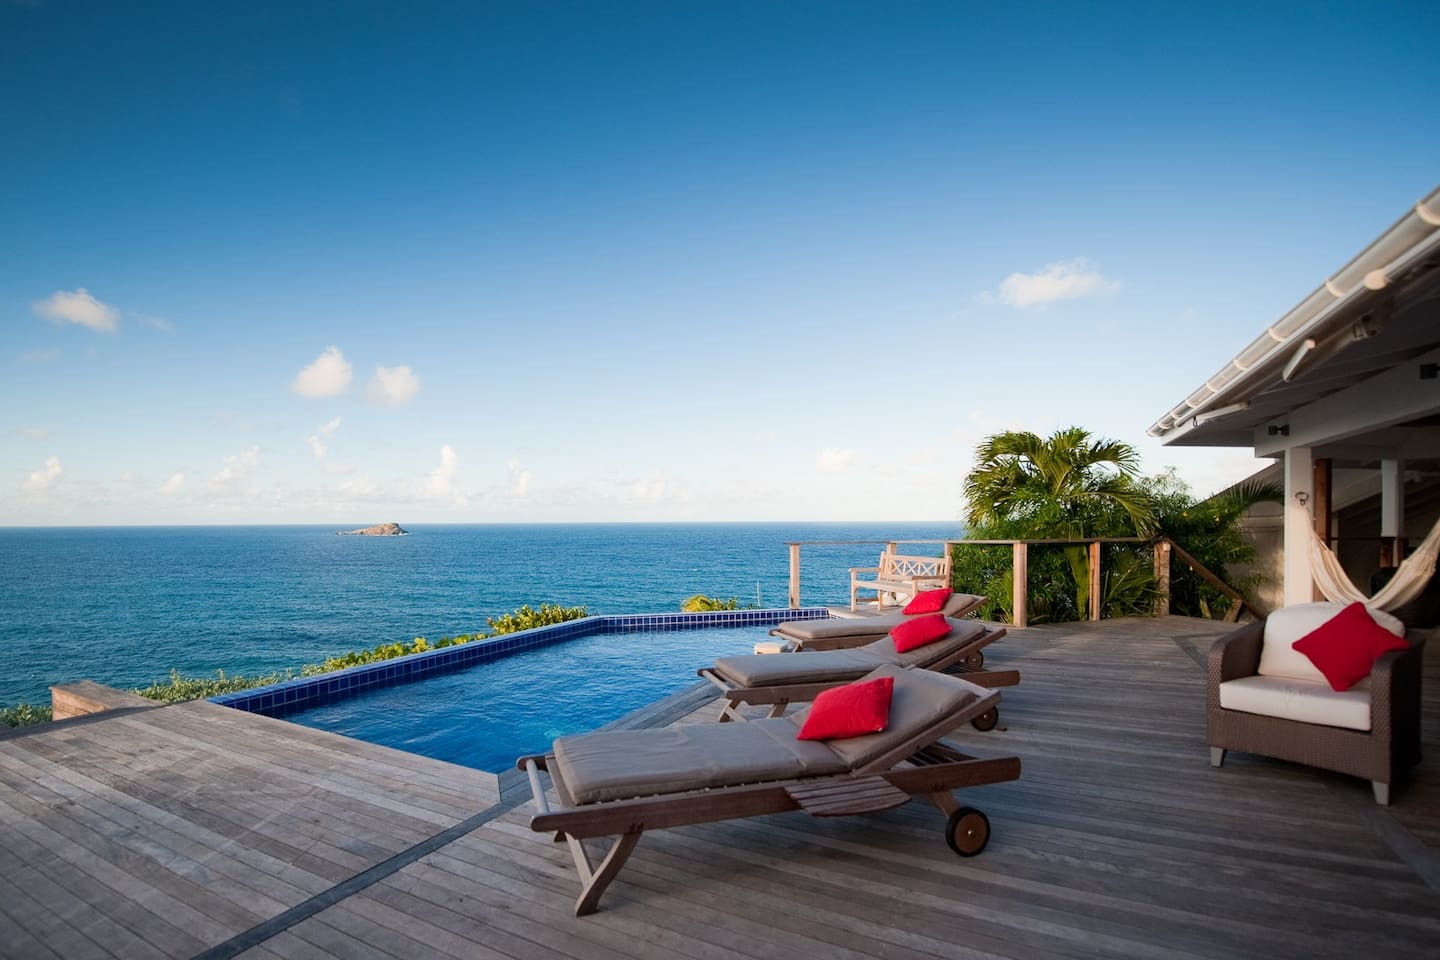 """""""….This island and your villa have again provided a much needed oasis from a troubled world ... Thank you for another idyllic week on St. Barth's, enjoying your beautiful home…"""""""